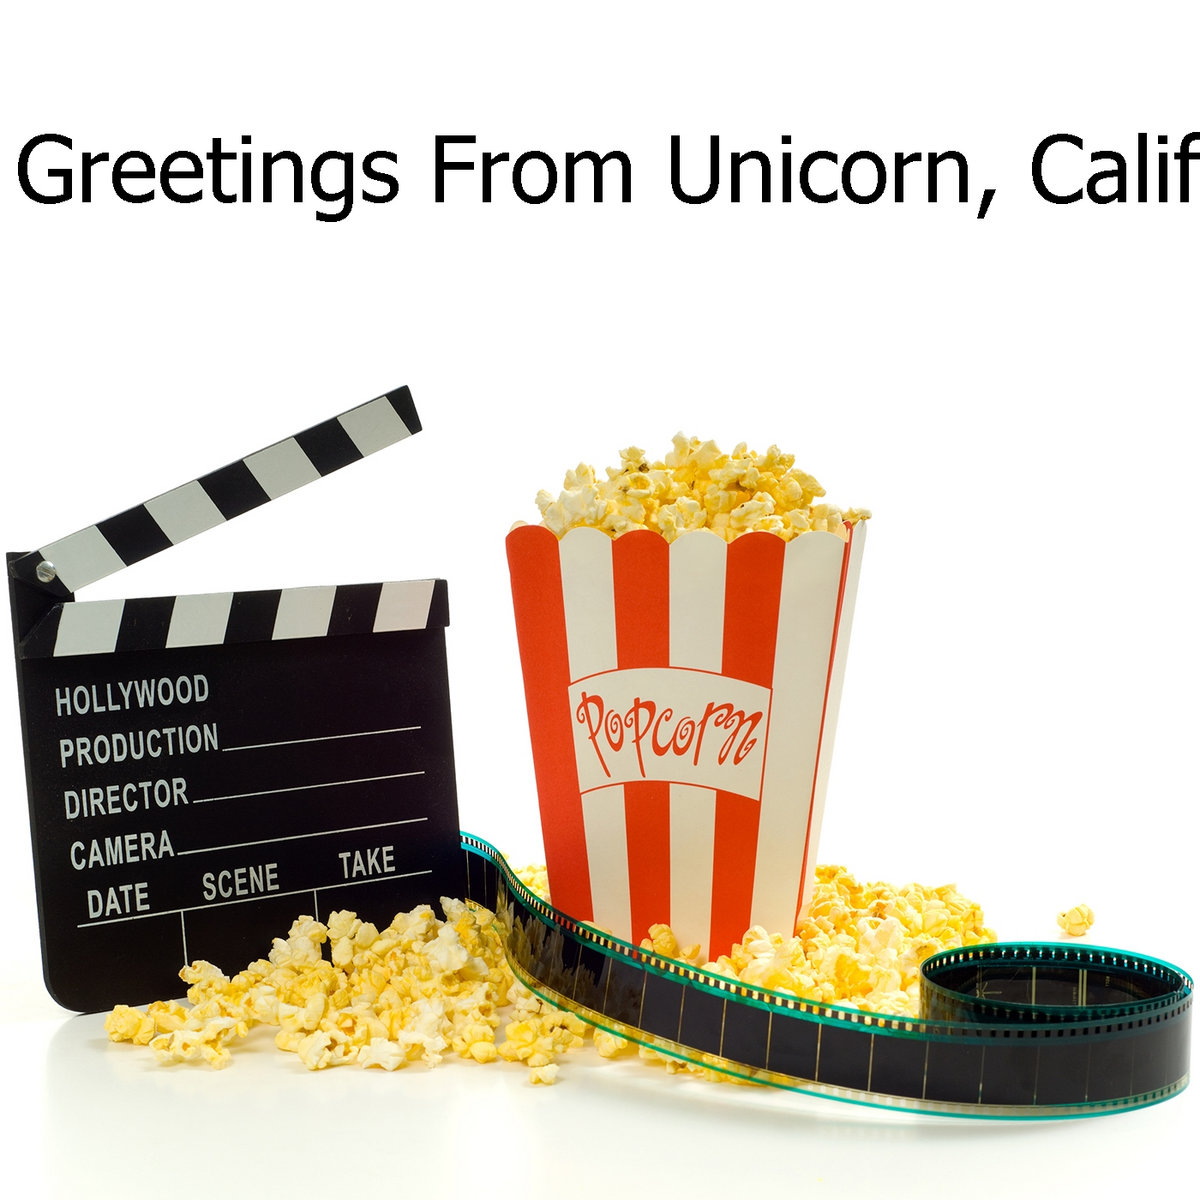 720p torrent download greetings from unicorn california high by fecseomorreiprop m4hsunfo